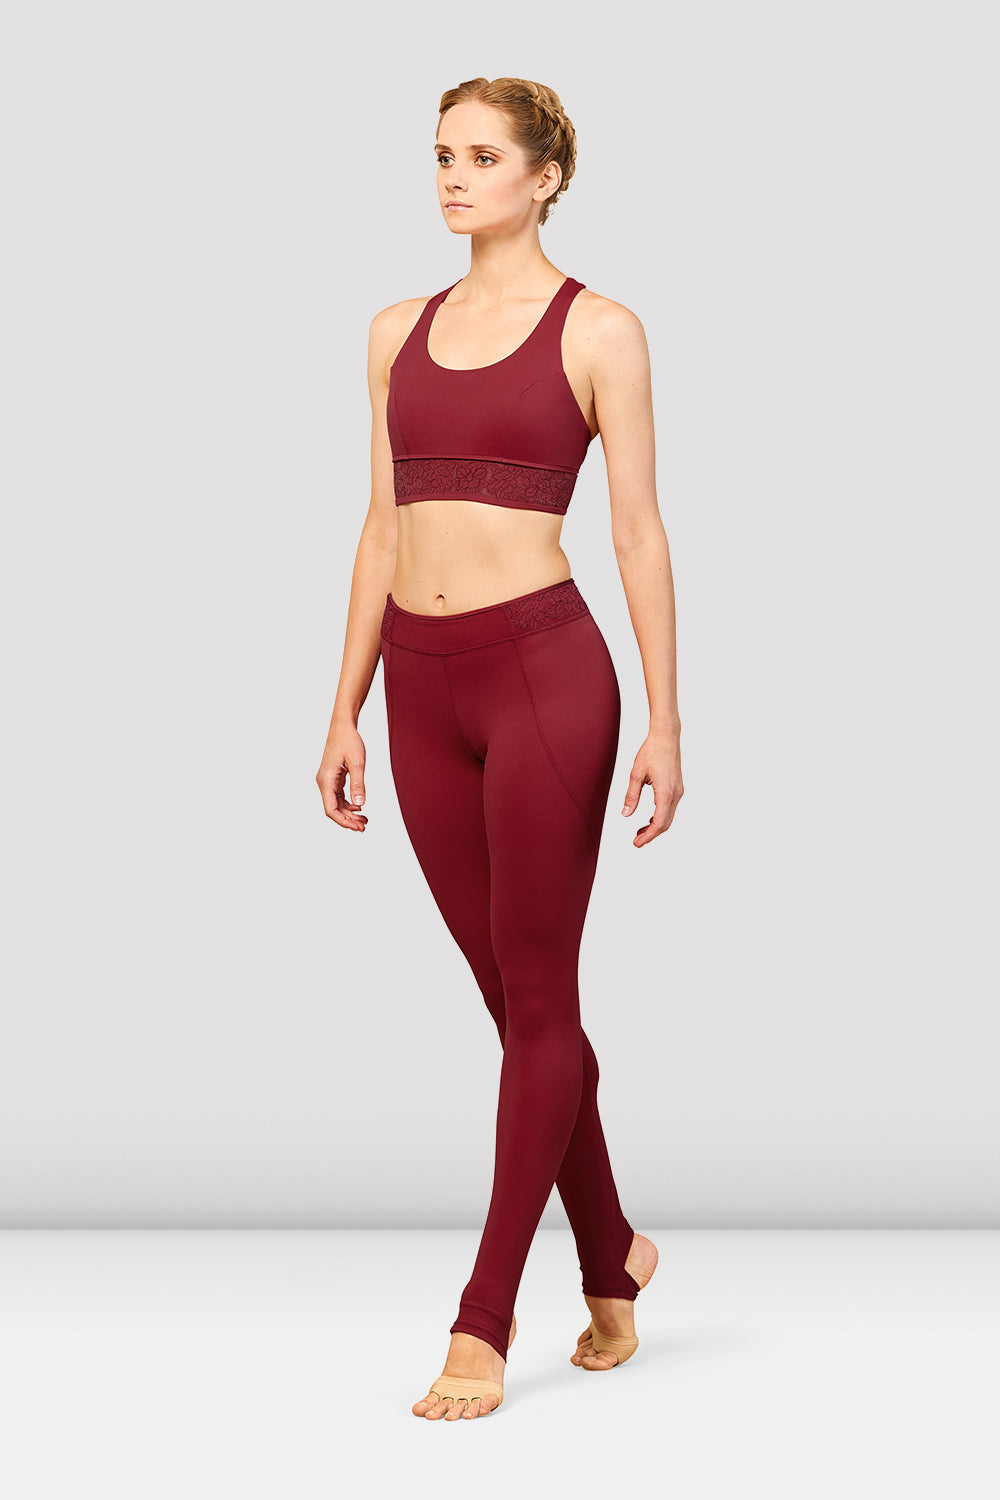 Ladies Bordeaux Trim Stirrup Legging